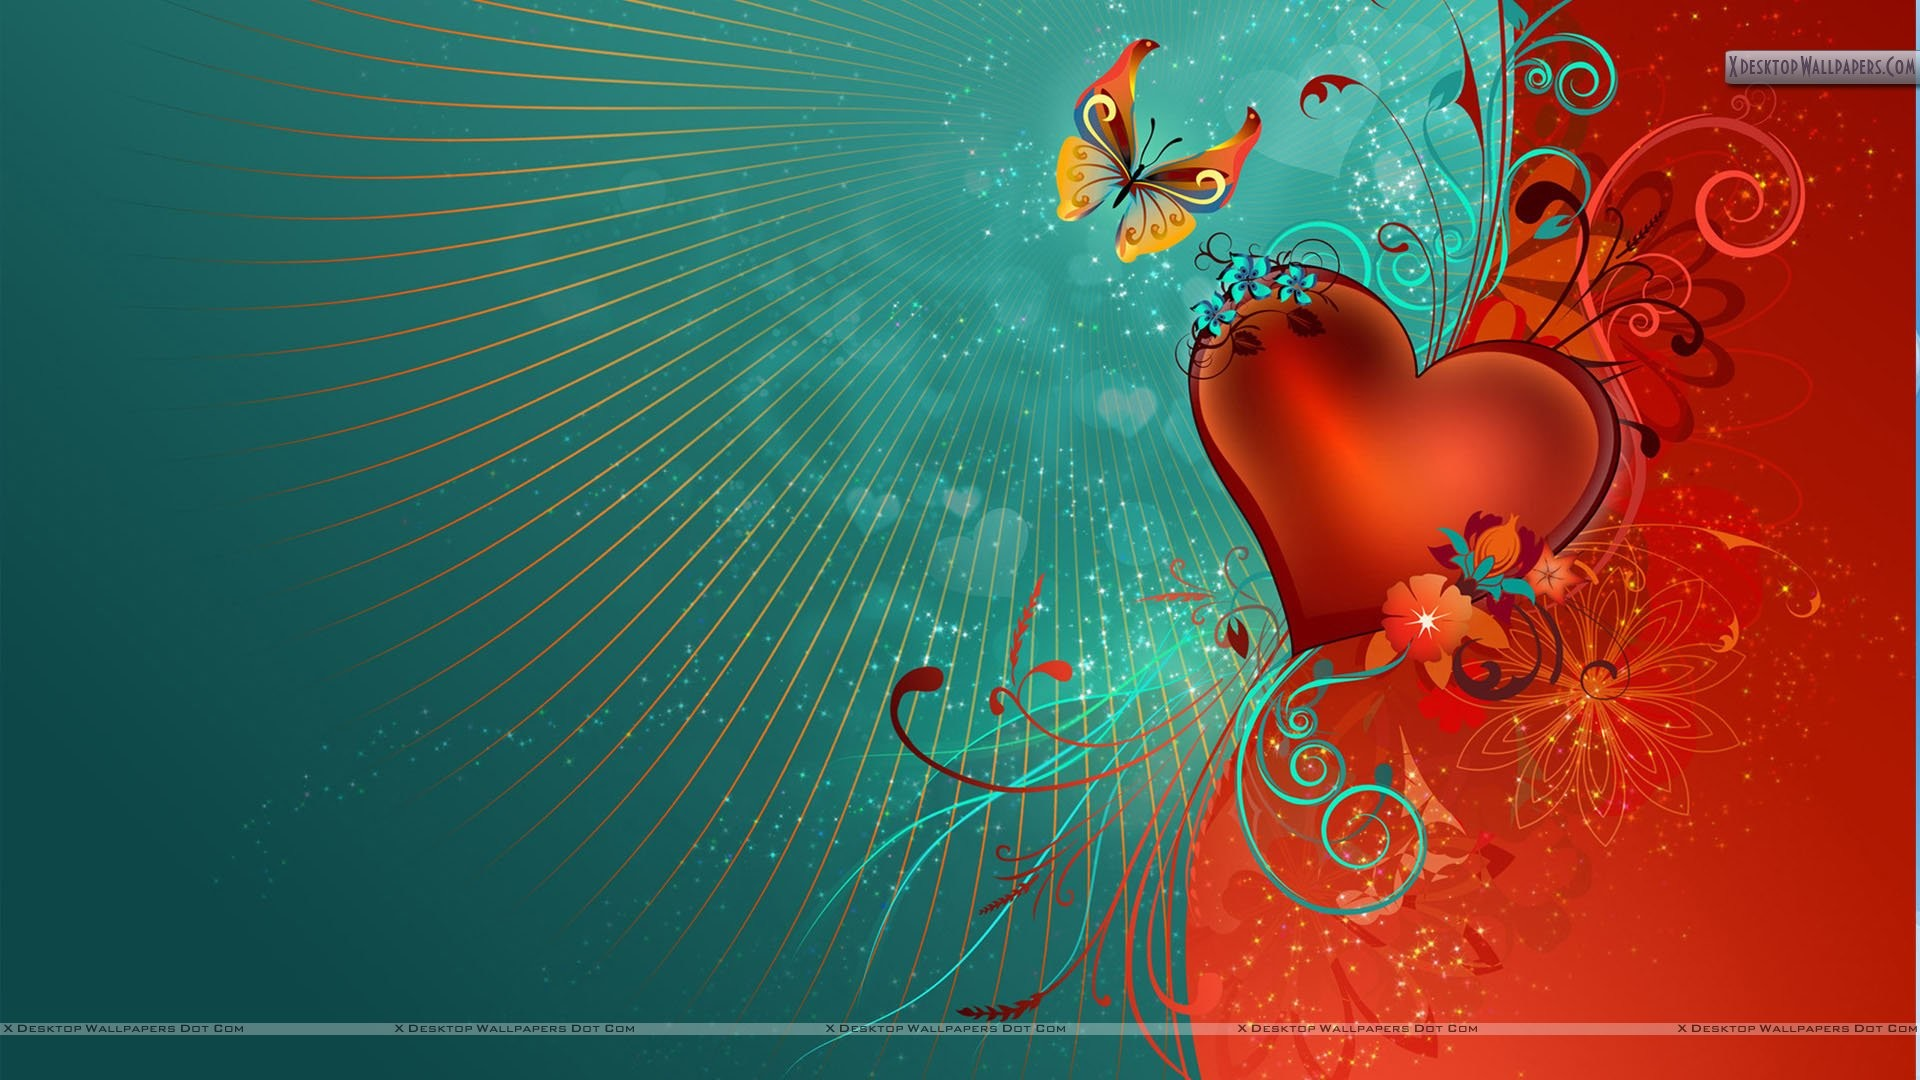 1920x1080 Valentines Day Artistic Wallpaper Red Heart And Butterfly